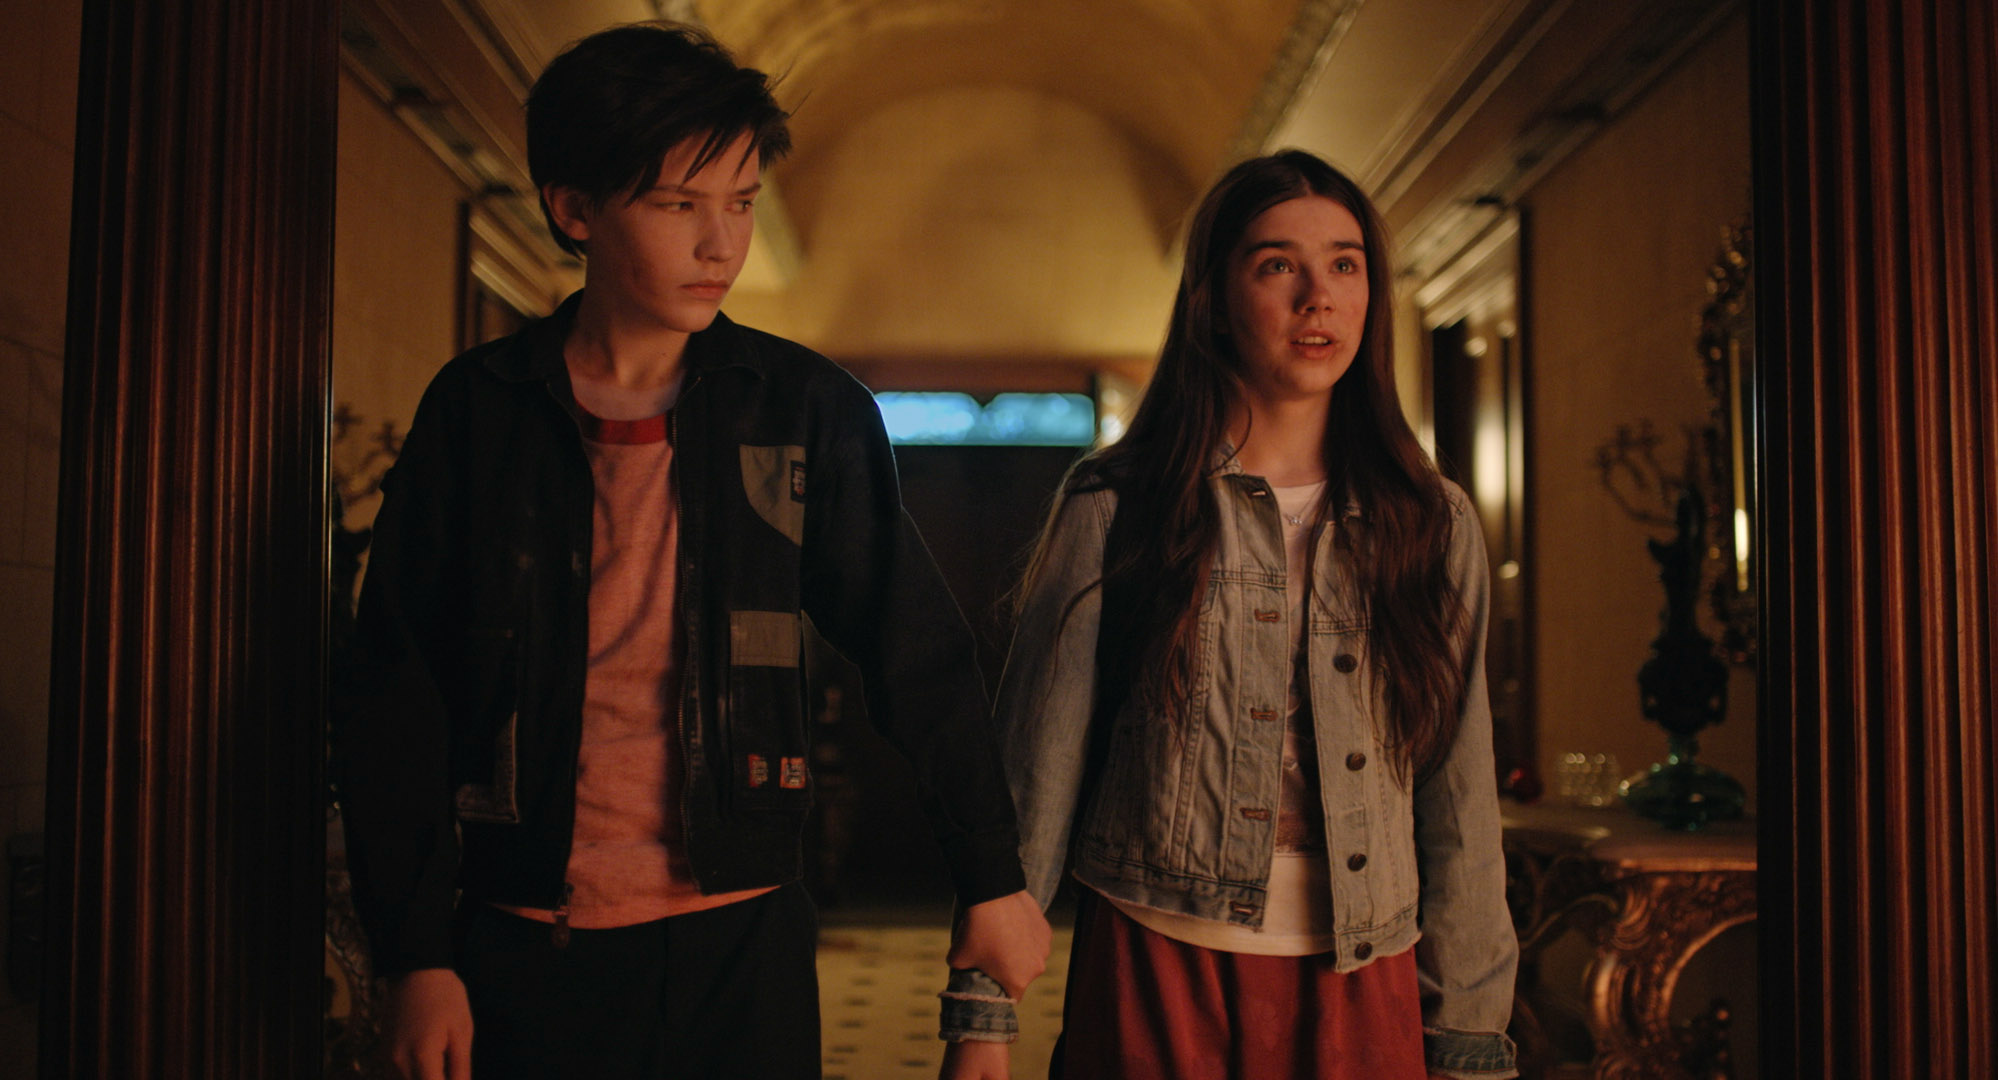 Jacob and Isabel stand together in a hall lit with red-orange light. He is looking at her and holding onto her wrist, while she looks ahead with a shocked/scared expression.